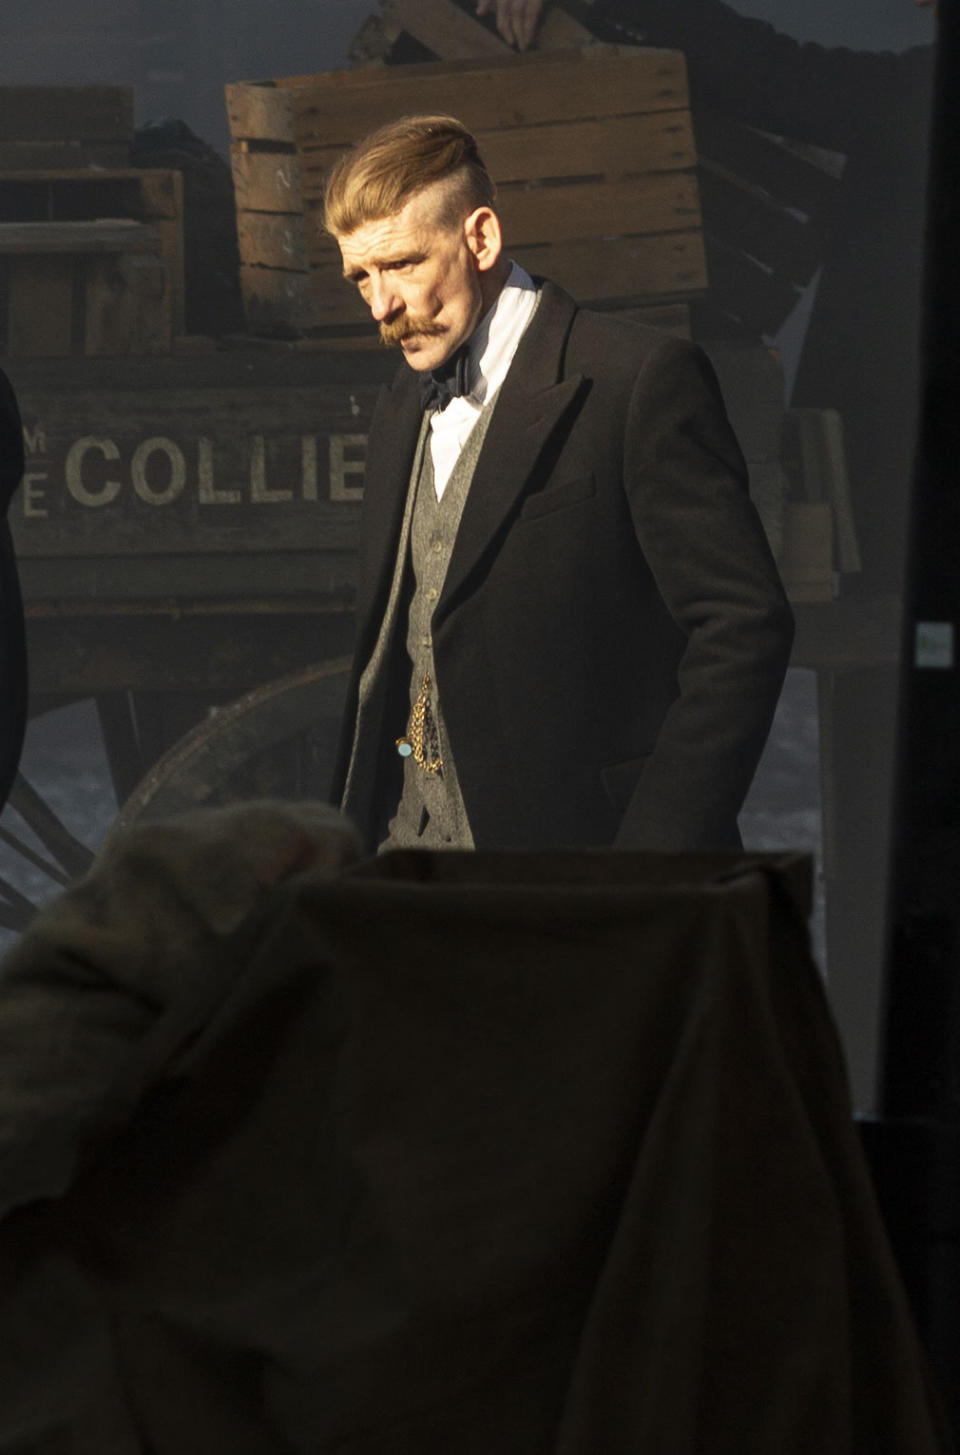 Paul Anderson, who plays Arthur Shelby, prepares for a scene. The filming of Peaky Bliders season 6 continues, in Manchester, pictured in Greater Manchester, March 2 2021. (SWNS)